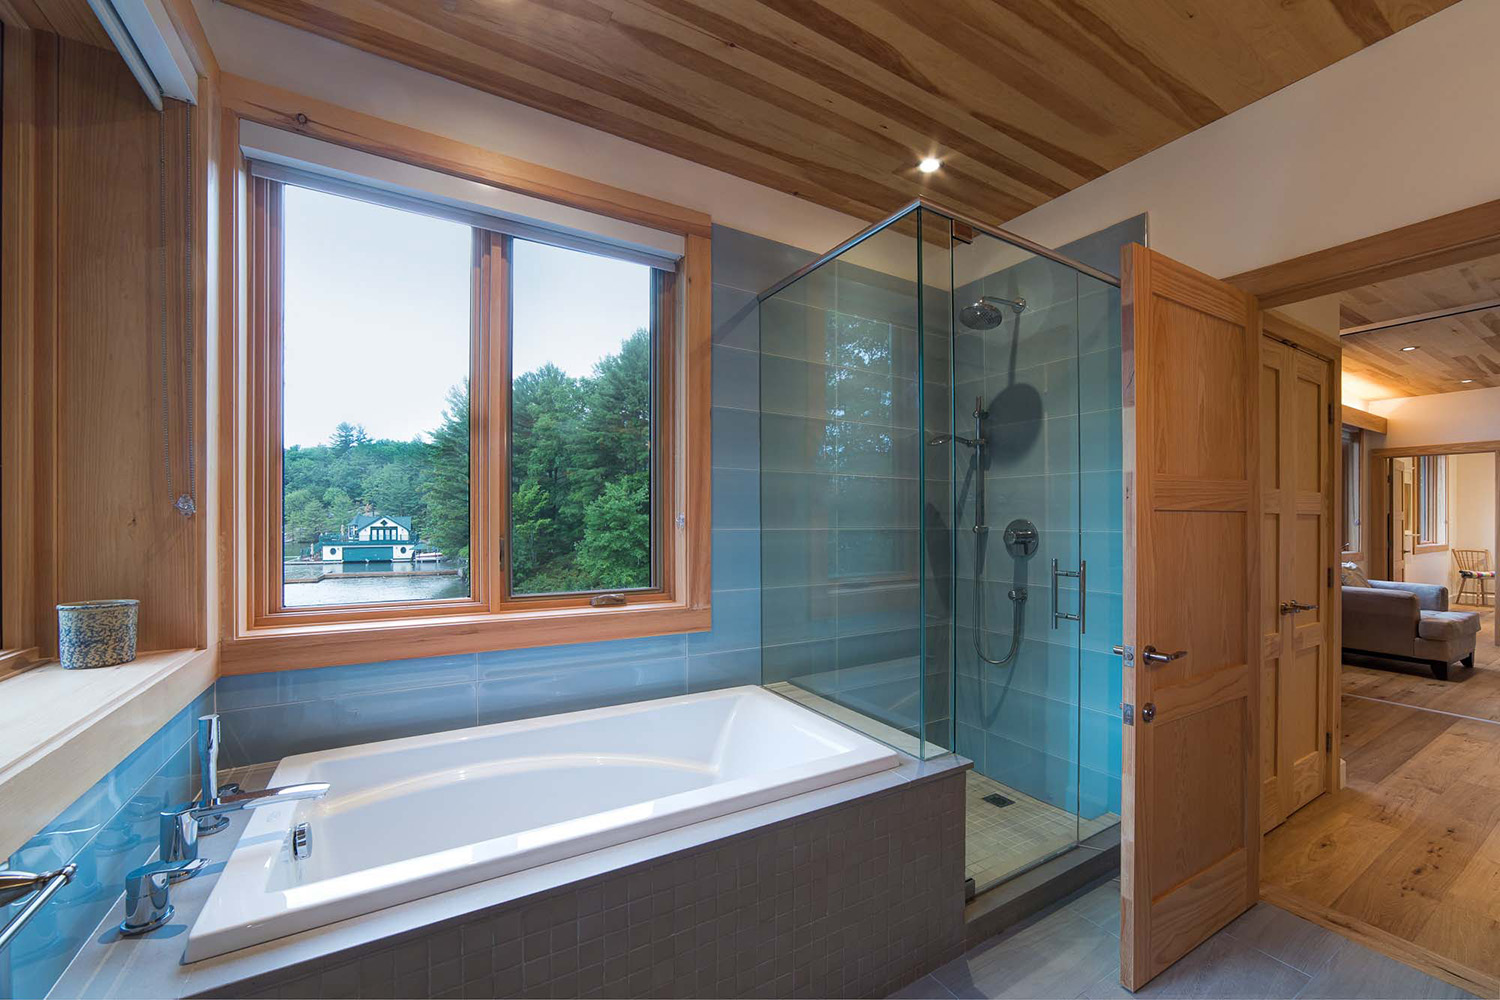 Cottage Bathroom in Muskokas with large blue tiles, glass shower enclosure and integral tub